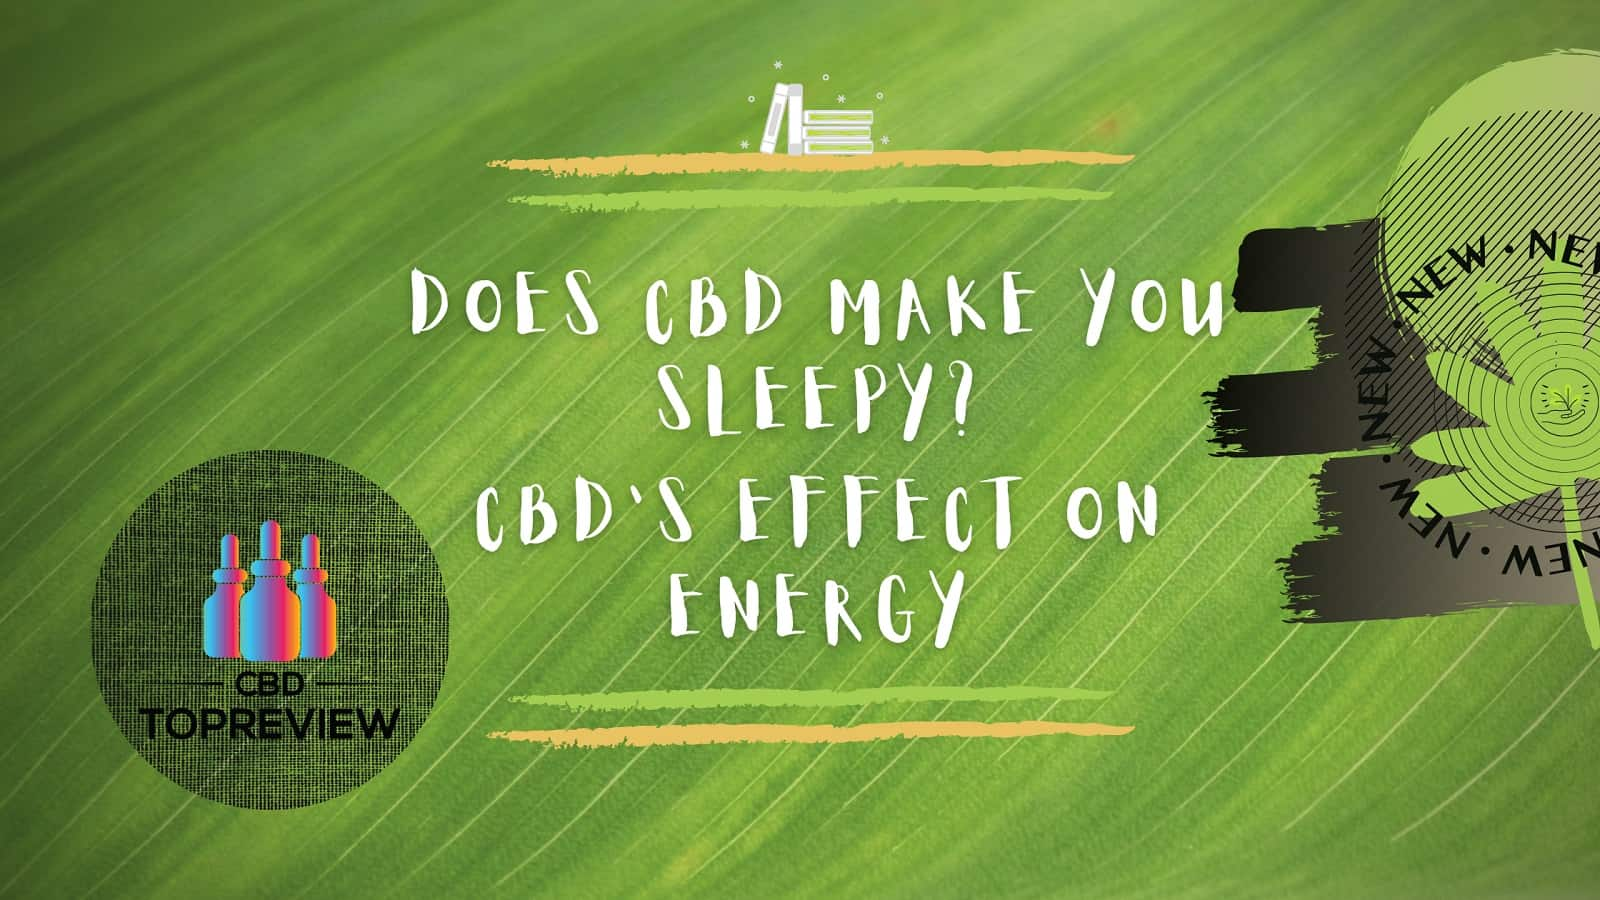 Does CBD make you sleepy post